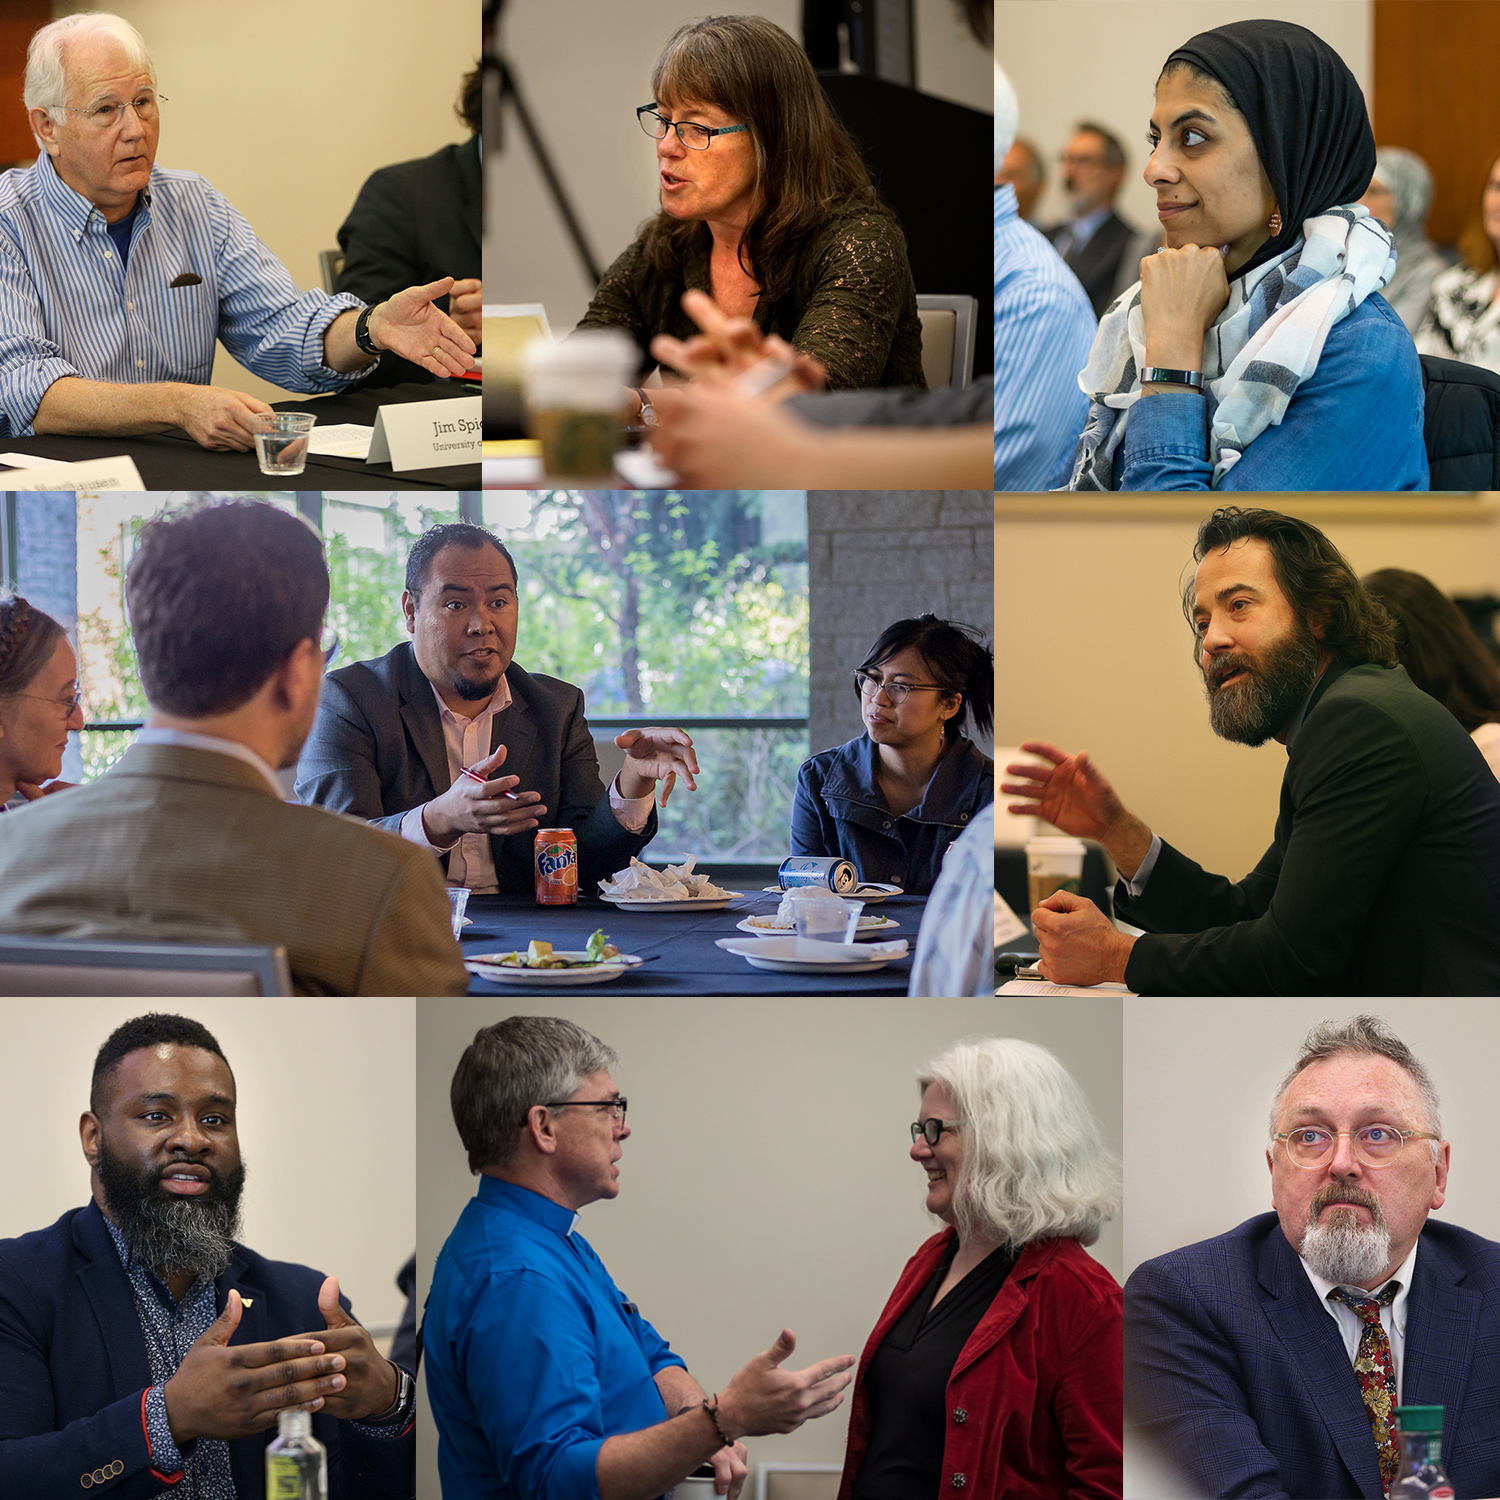 Center for Religious Wisdom & World Affairs 2018 Symposium on Homelessness (Clockwise from top left) - Jim Spickard, Laura Stivers, Nancy Khalil, Manuel Mejido, Richard Morrison, Maggie Breen, Kelley Dahlman-Oeth, Michael Fisher, Jr., Roberto Mata